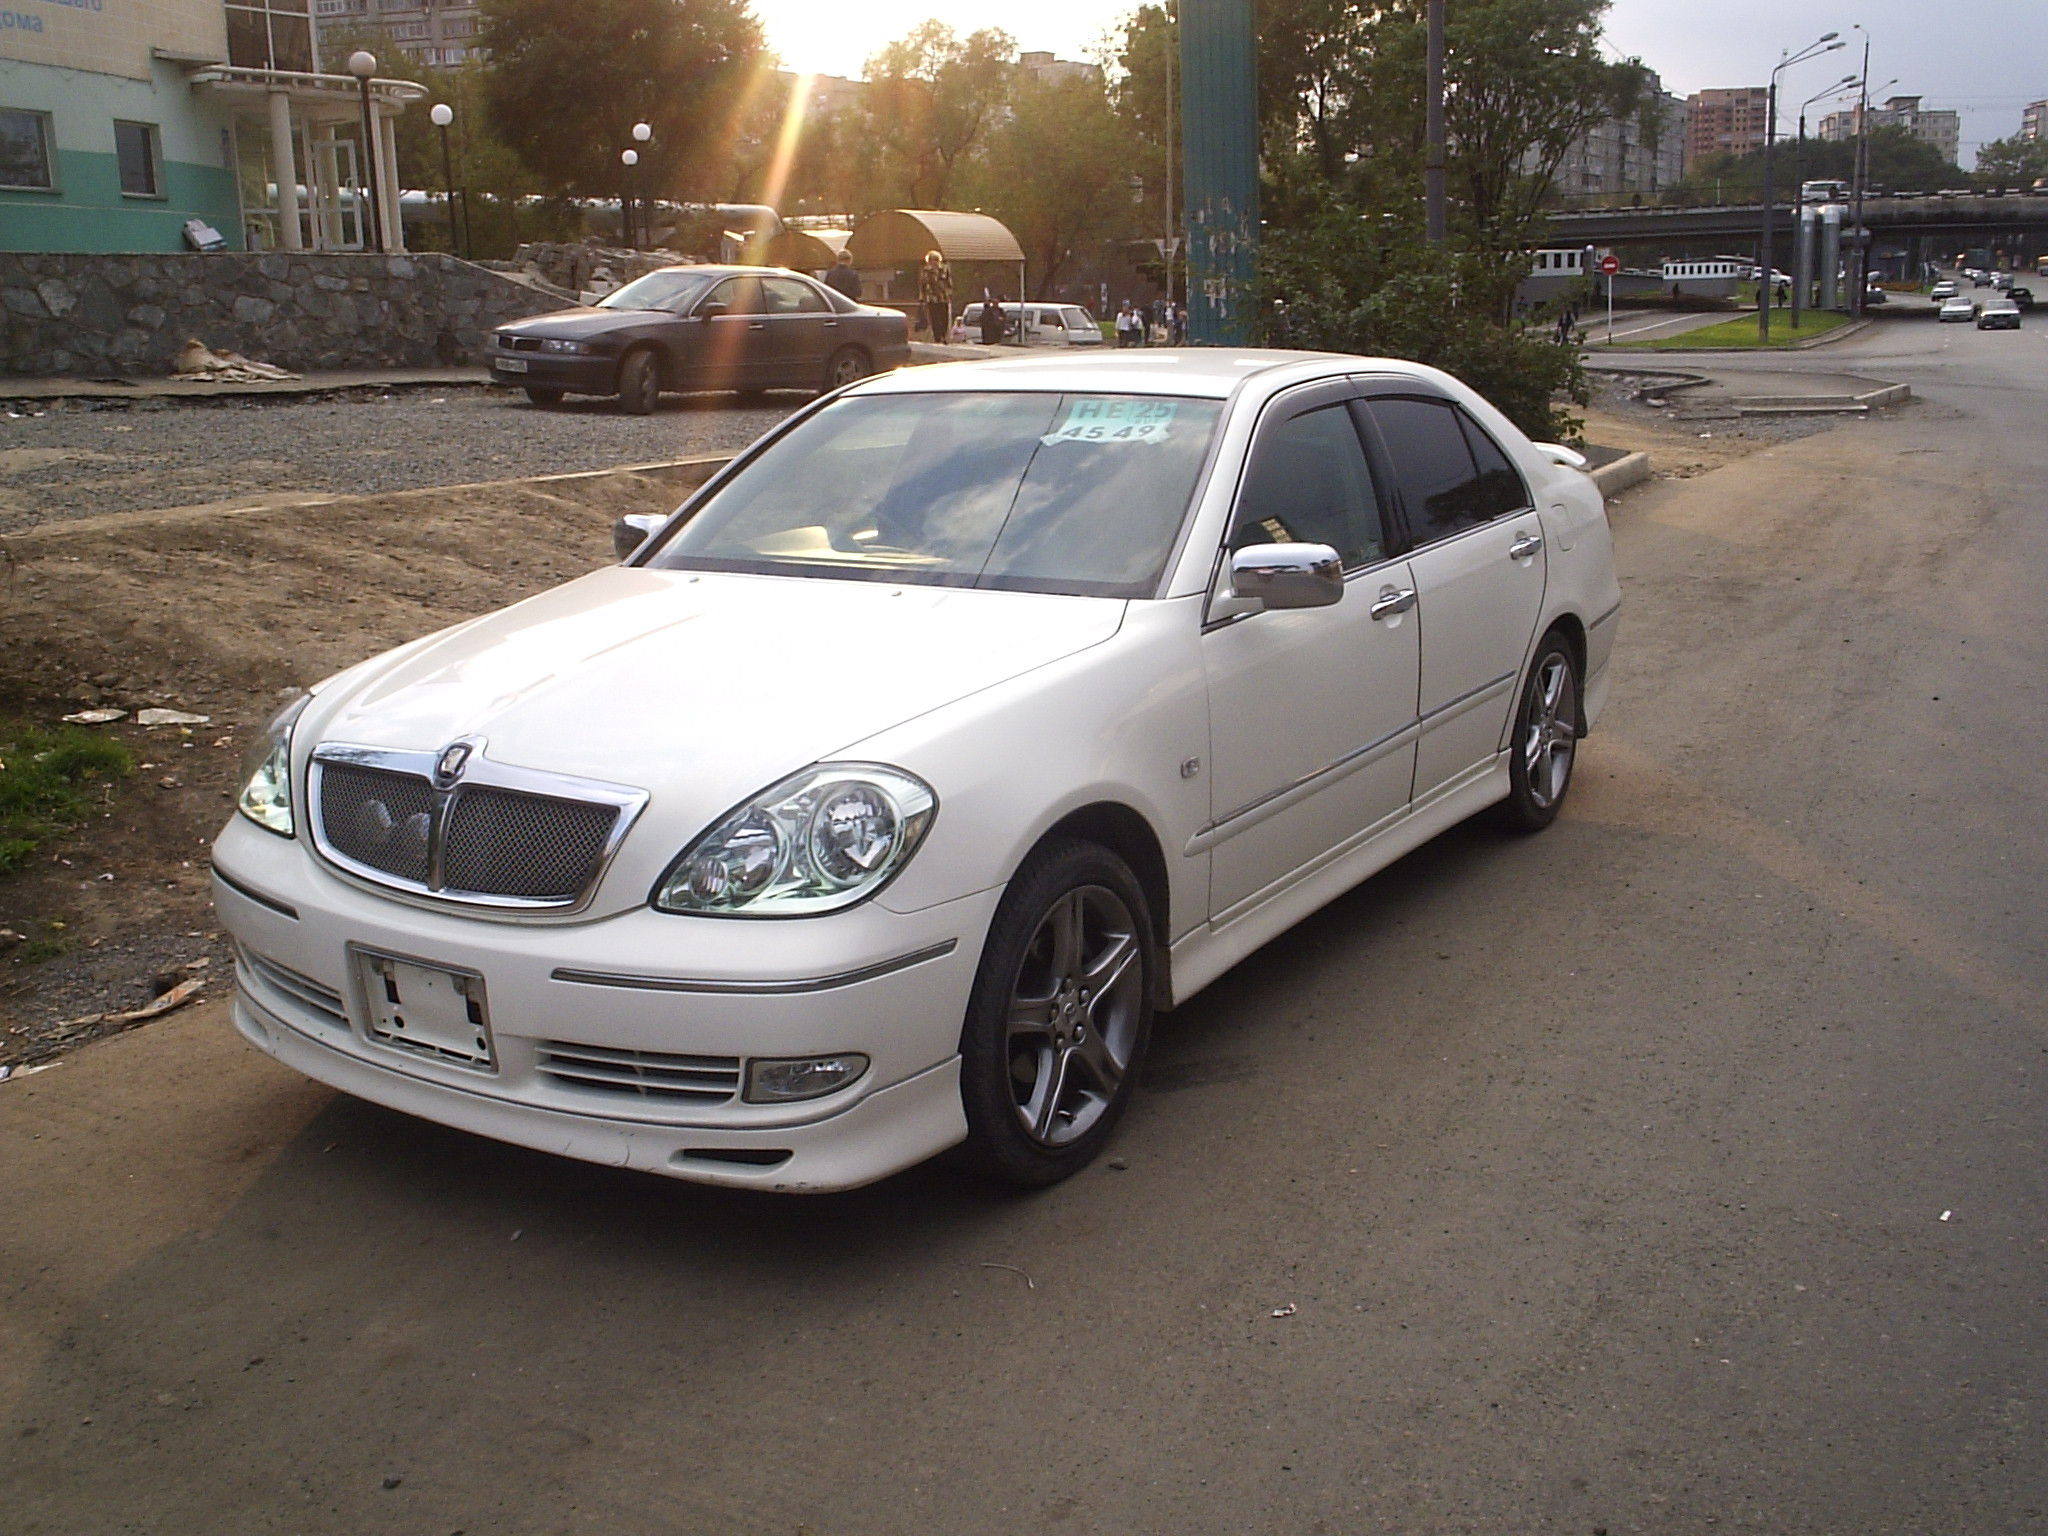 2002 toyota brevis pictures for sale rh cars directory net 2004 Toyota Brevis 2004 Toyota Brevis